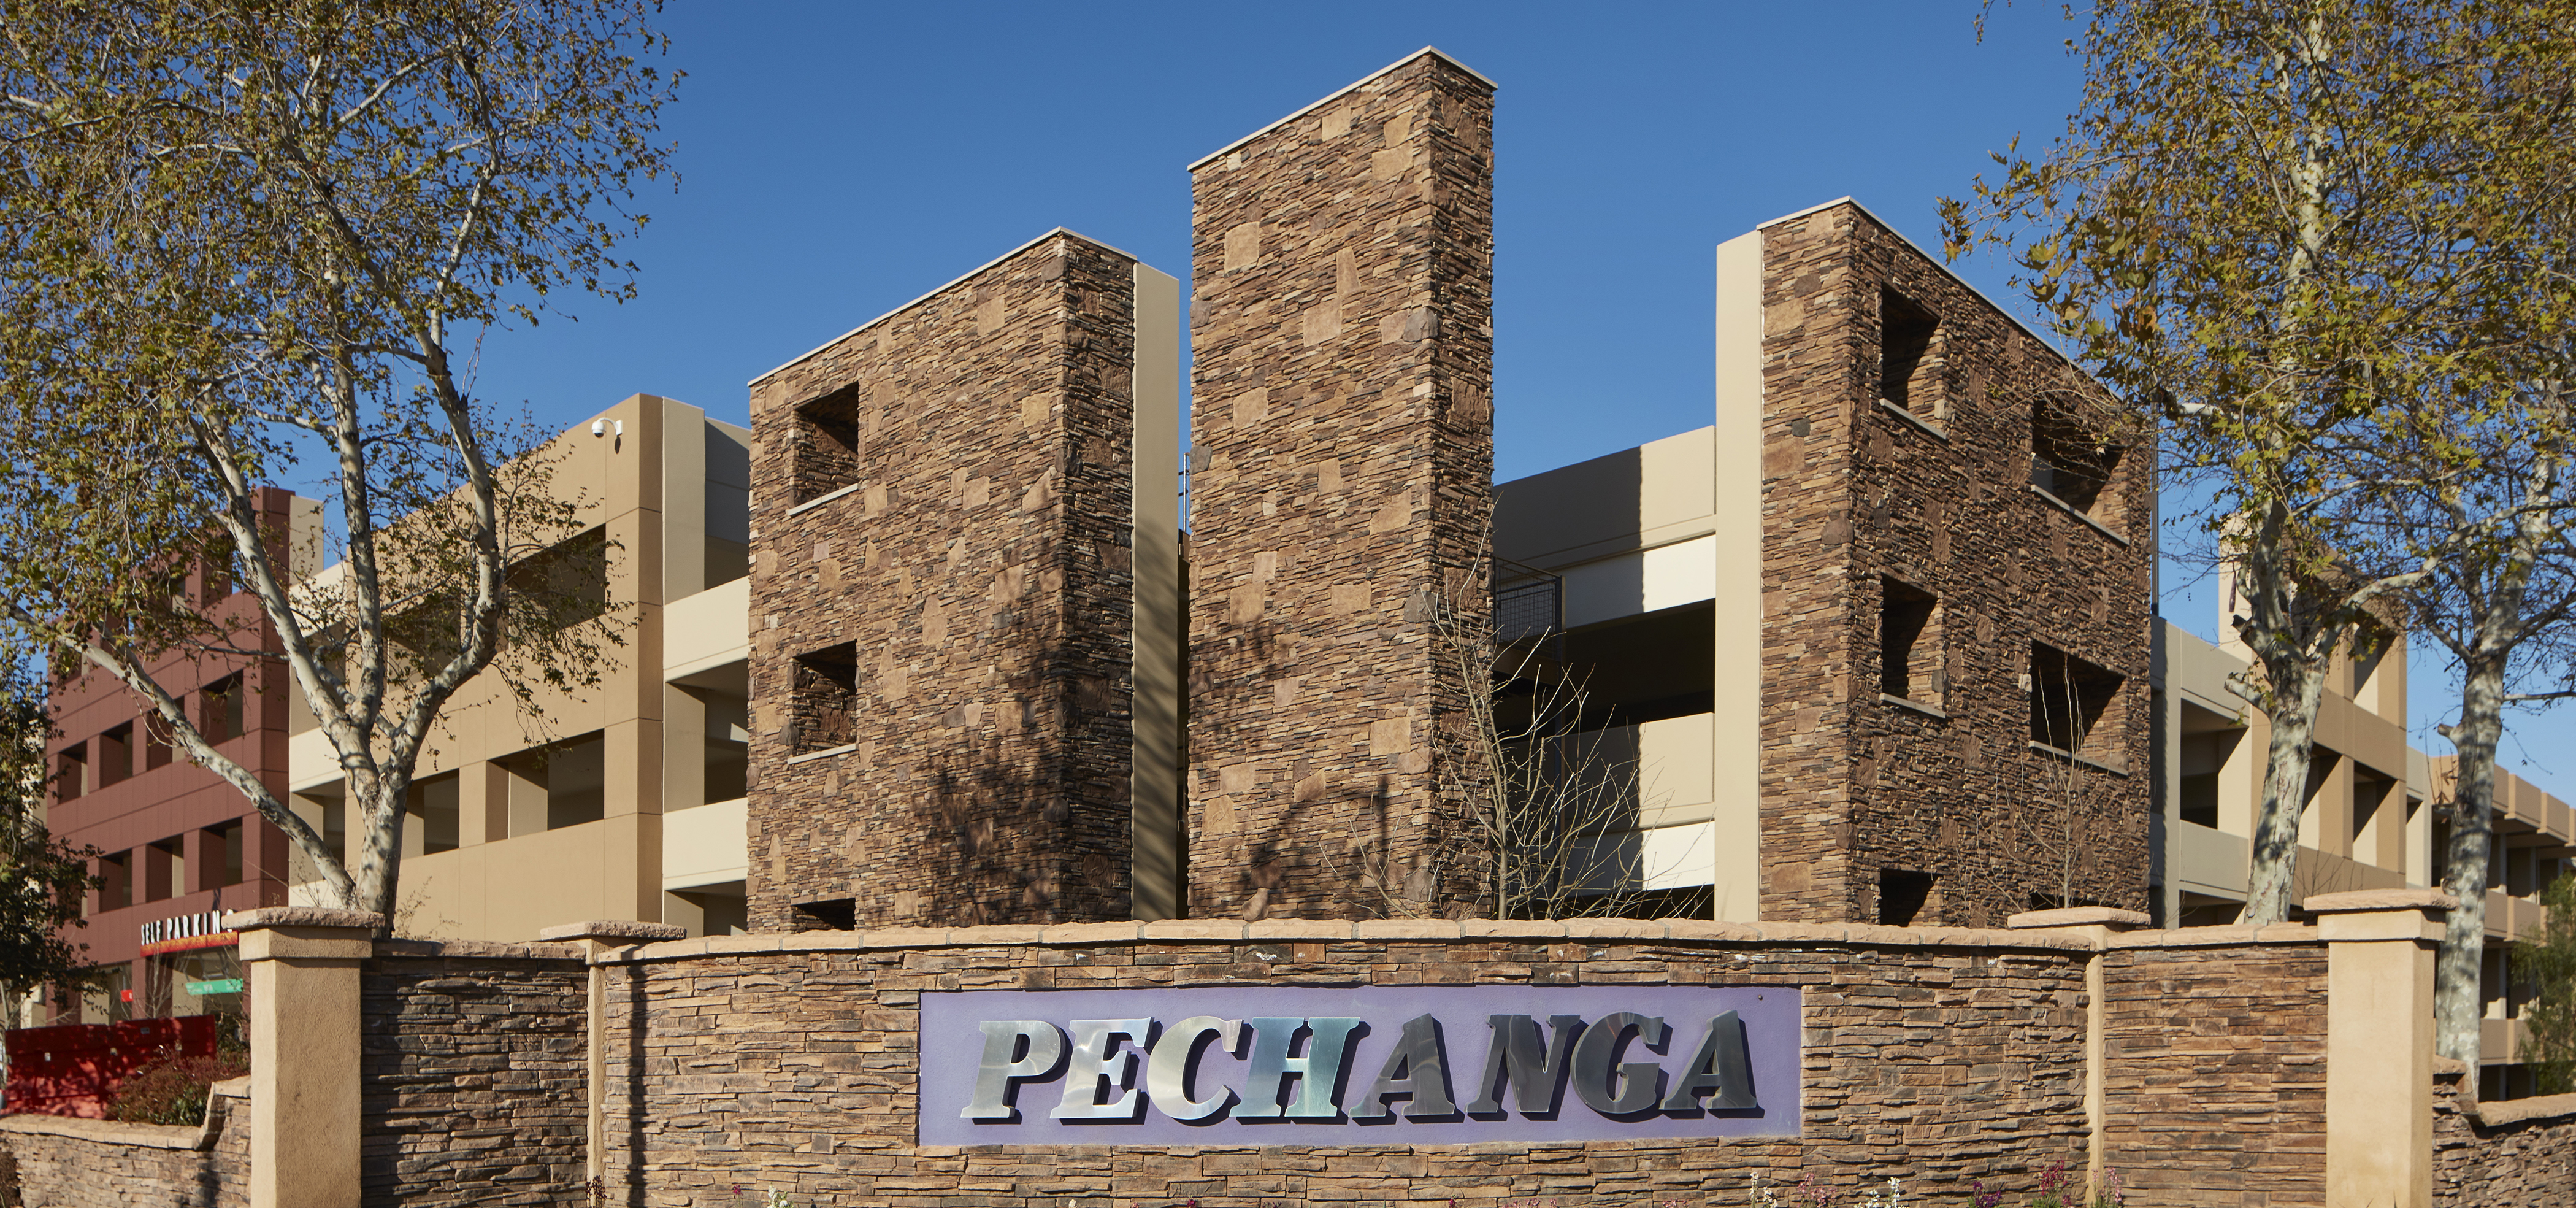 Pechanga East Parking Structure